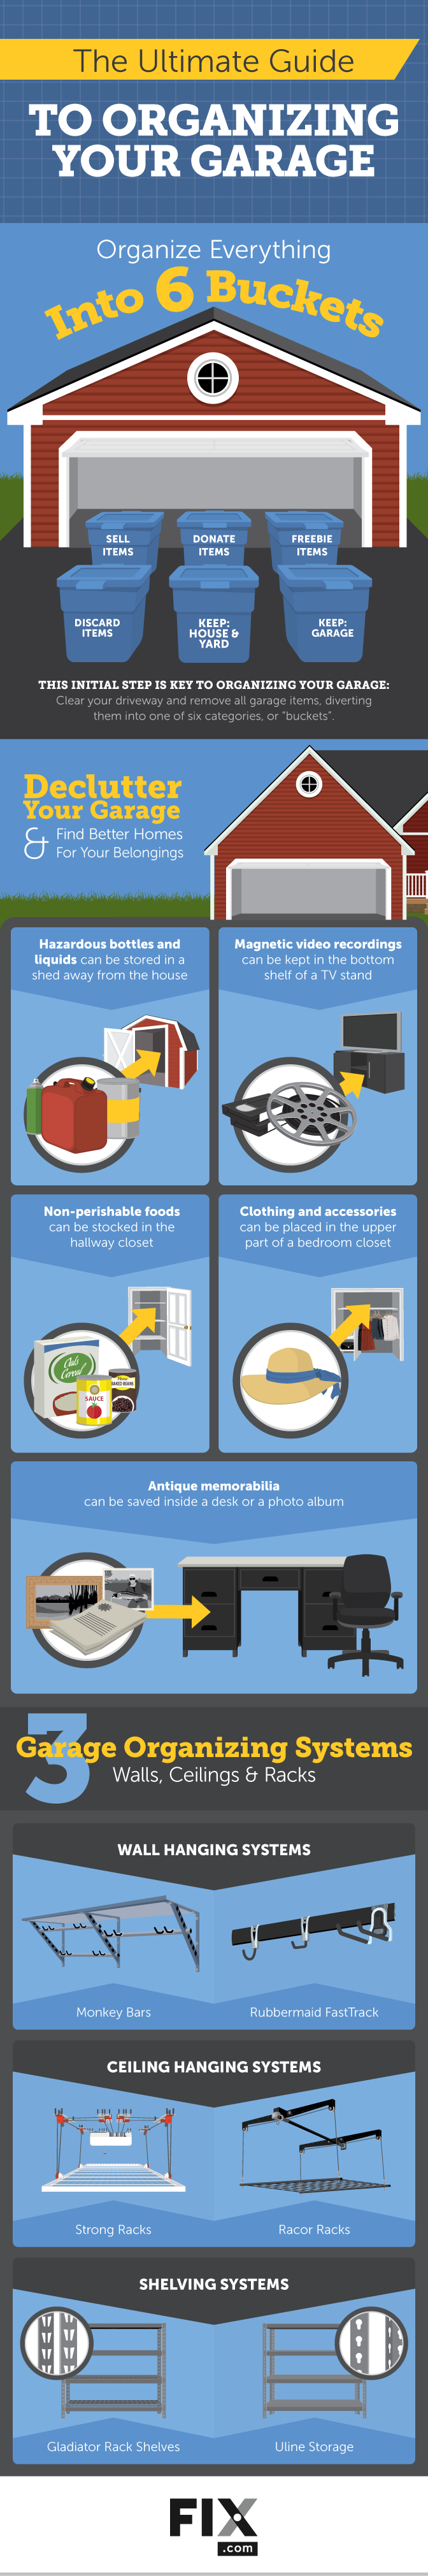 The Guide to the Last Garage Organization #infographic